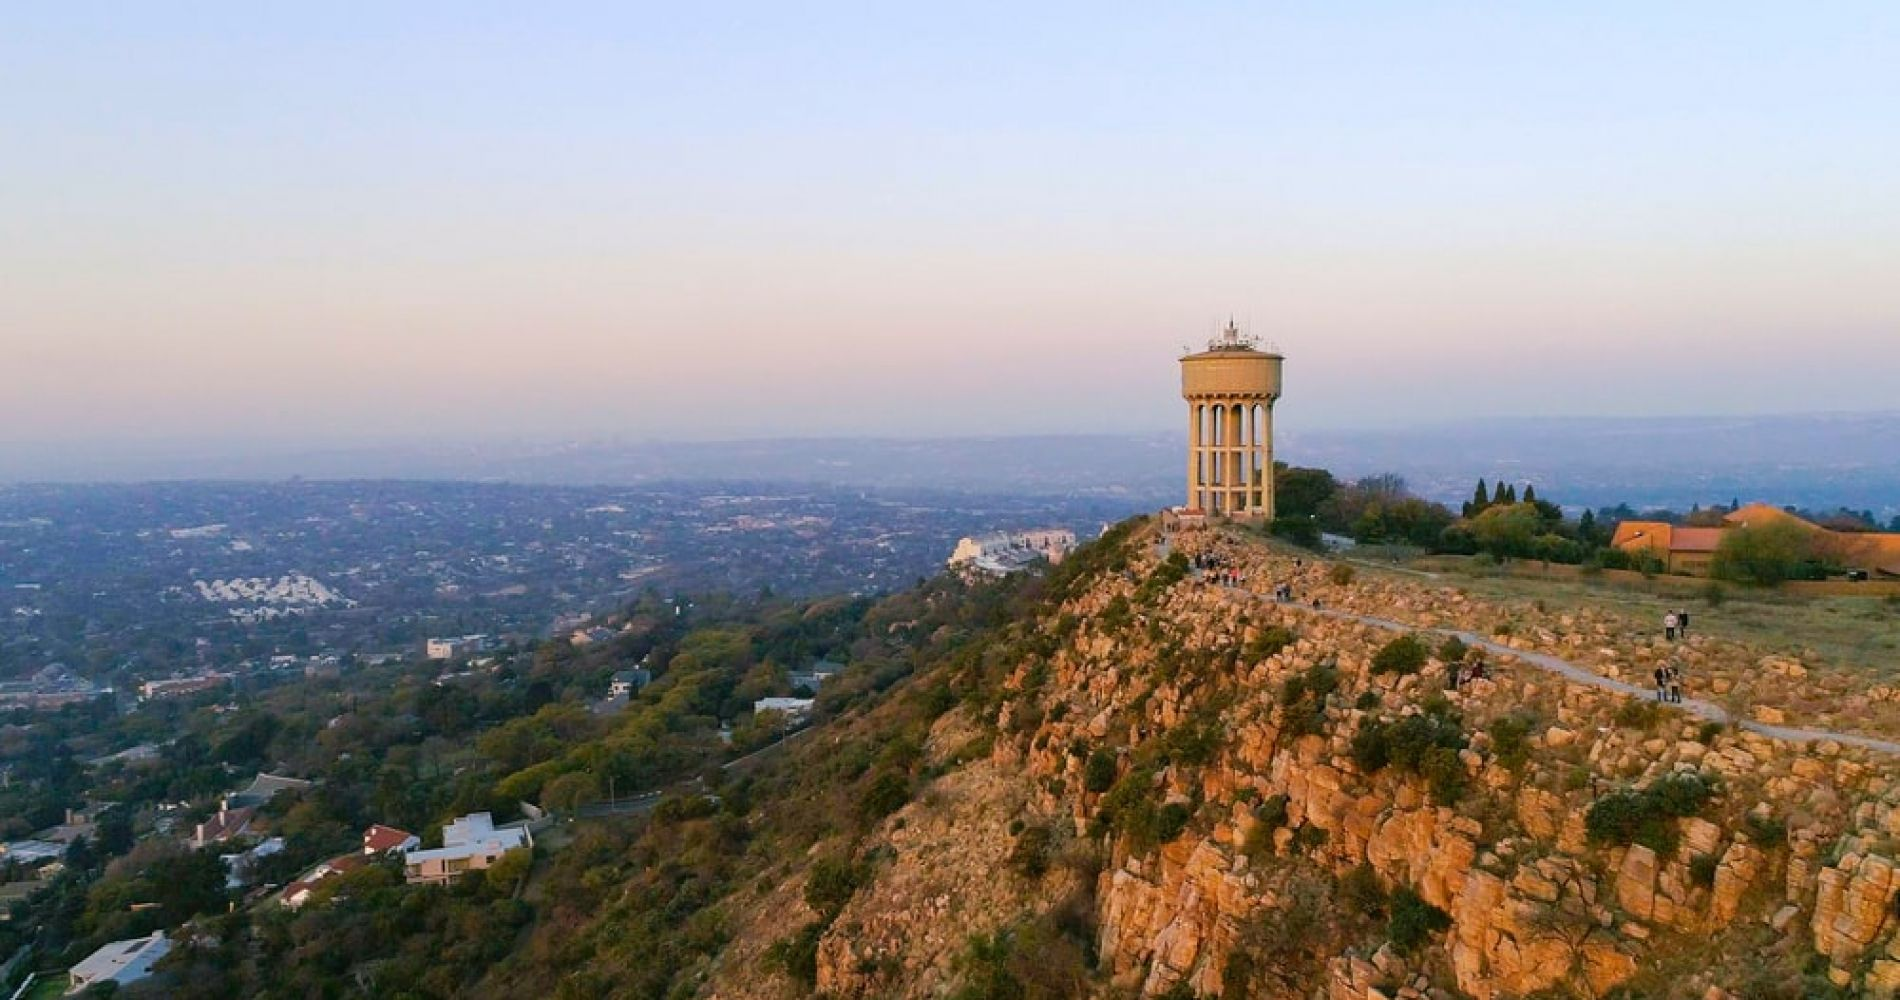 Catch the Sunset from the Northcliff Hill in Johannesburg